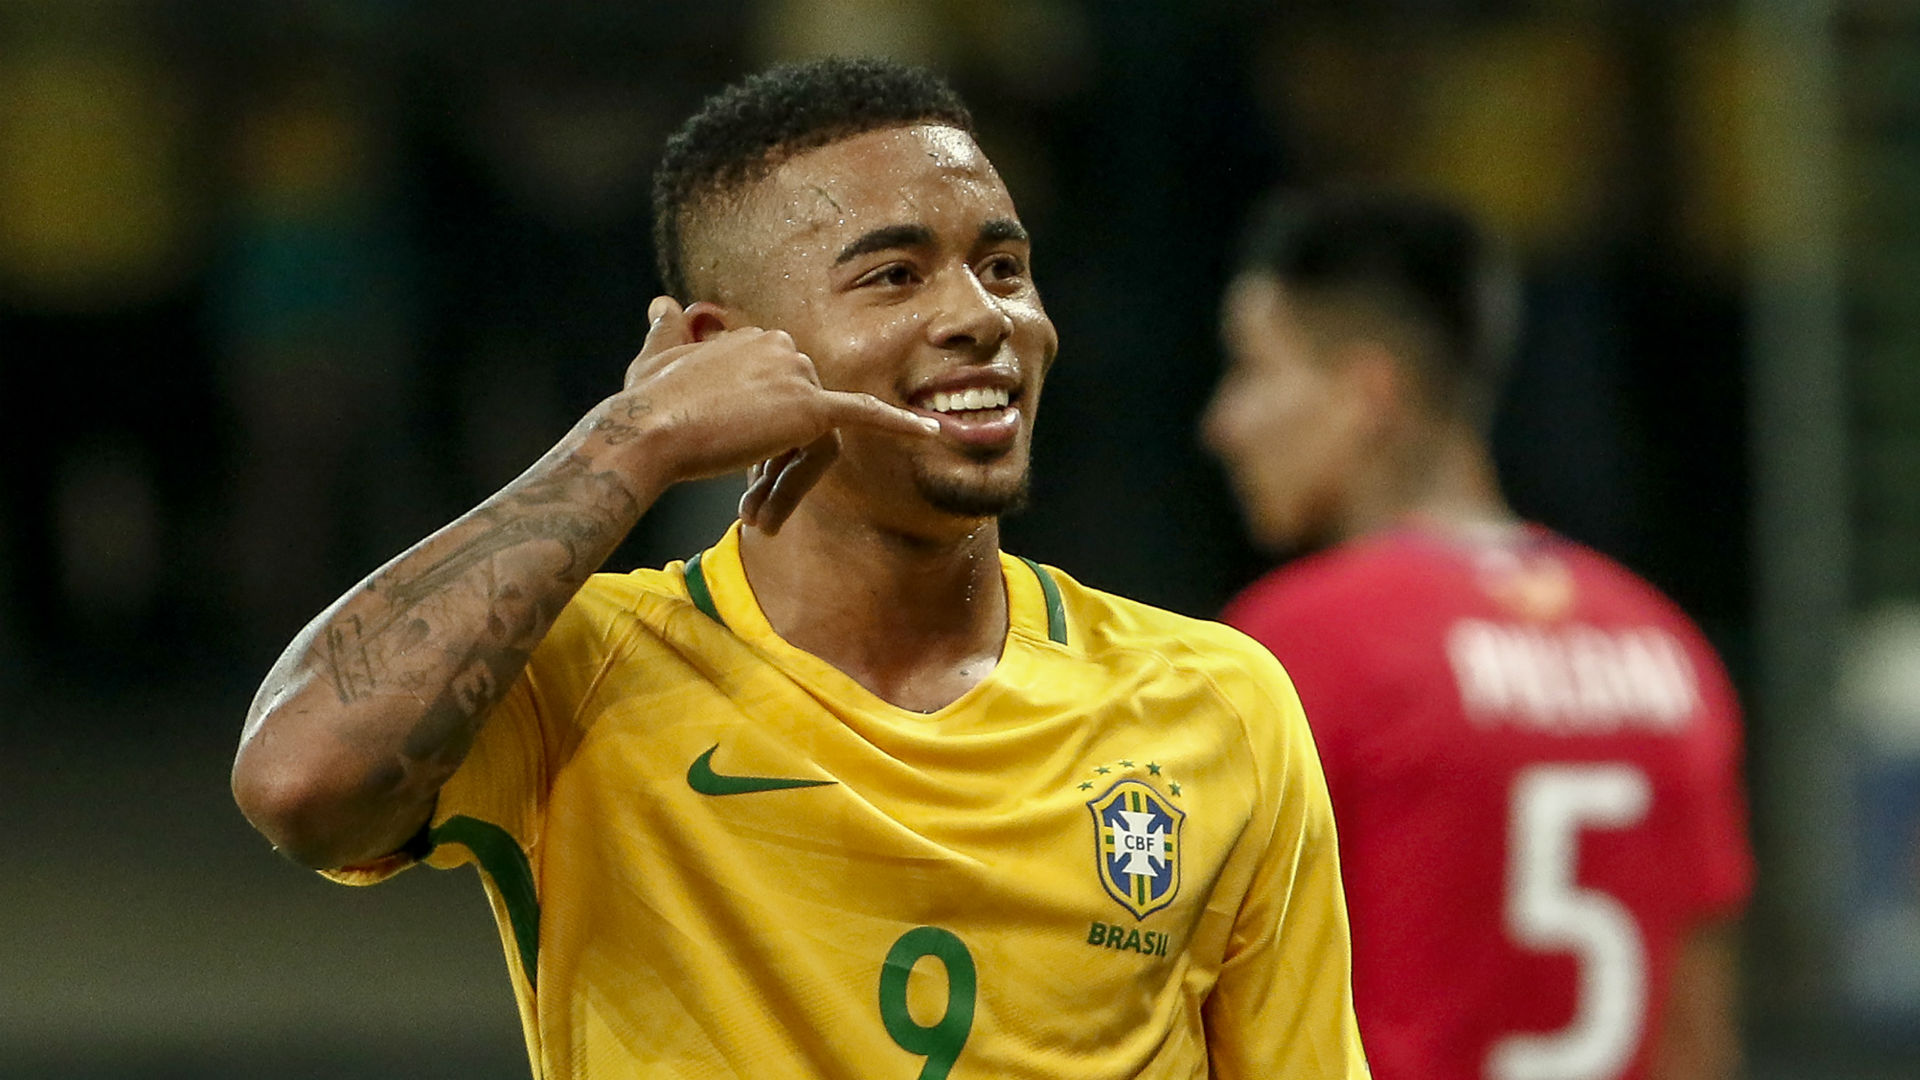 'Have sex and score goals!' - Gabriel Jesus offered World Cup advice by Brazil legend Romario